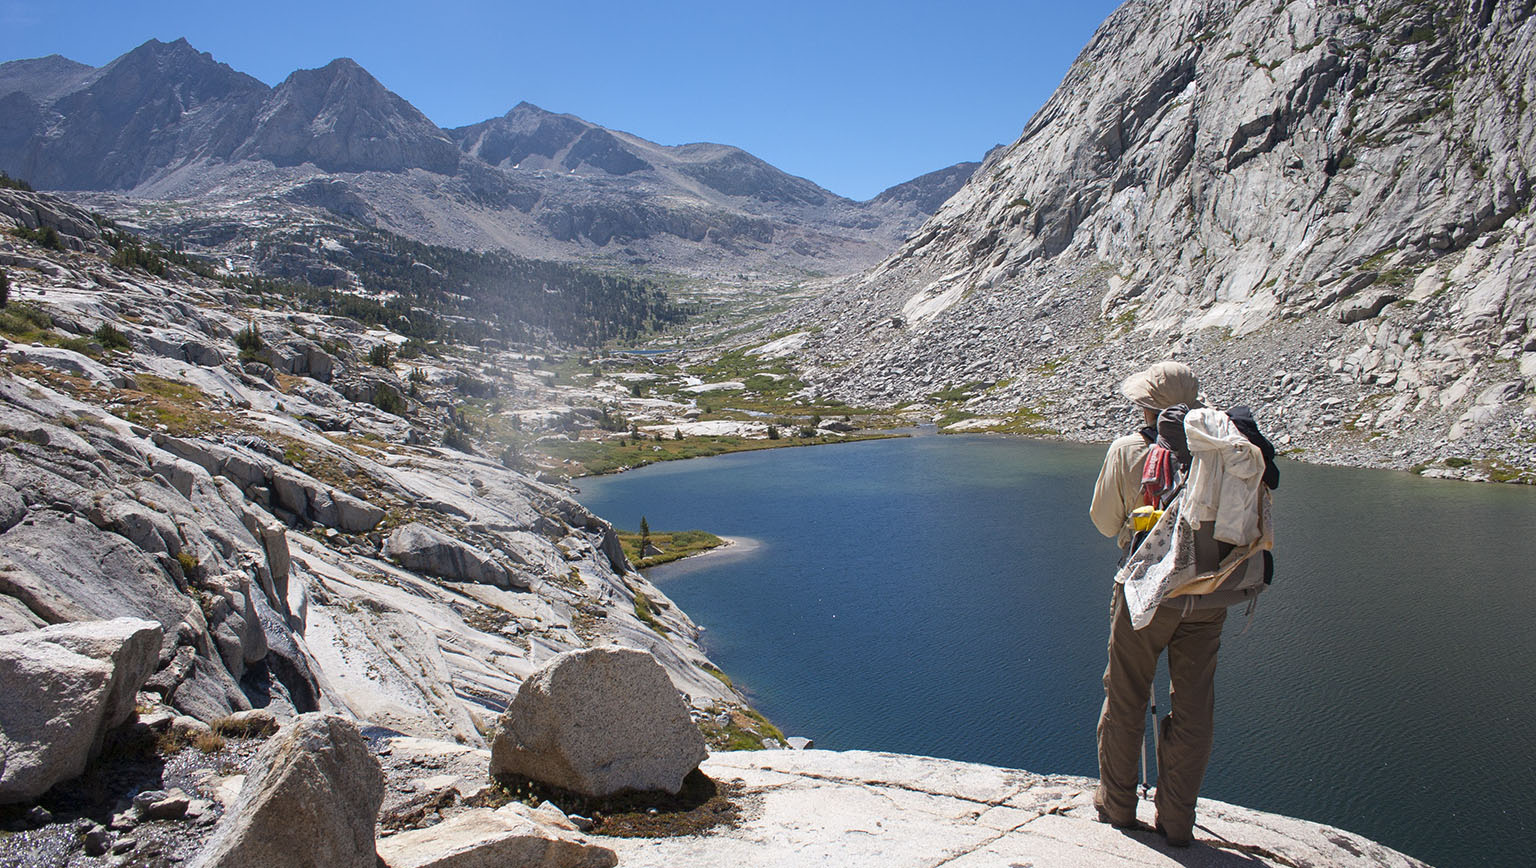 High above Lower Palisades Lake. Mather Pass is the lowest notch all the way in the back